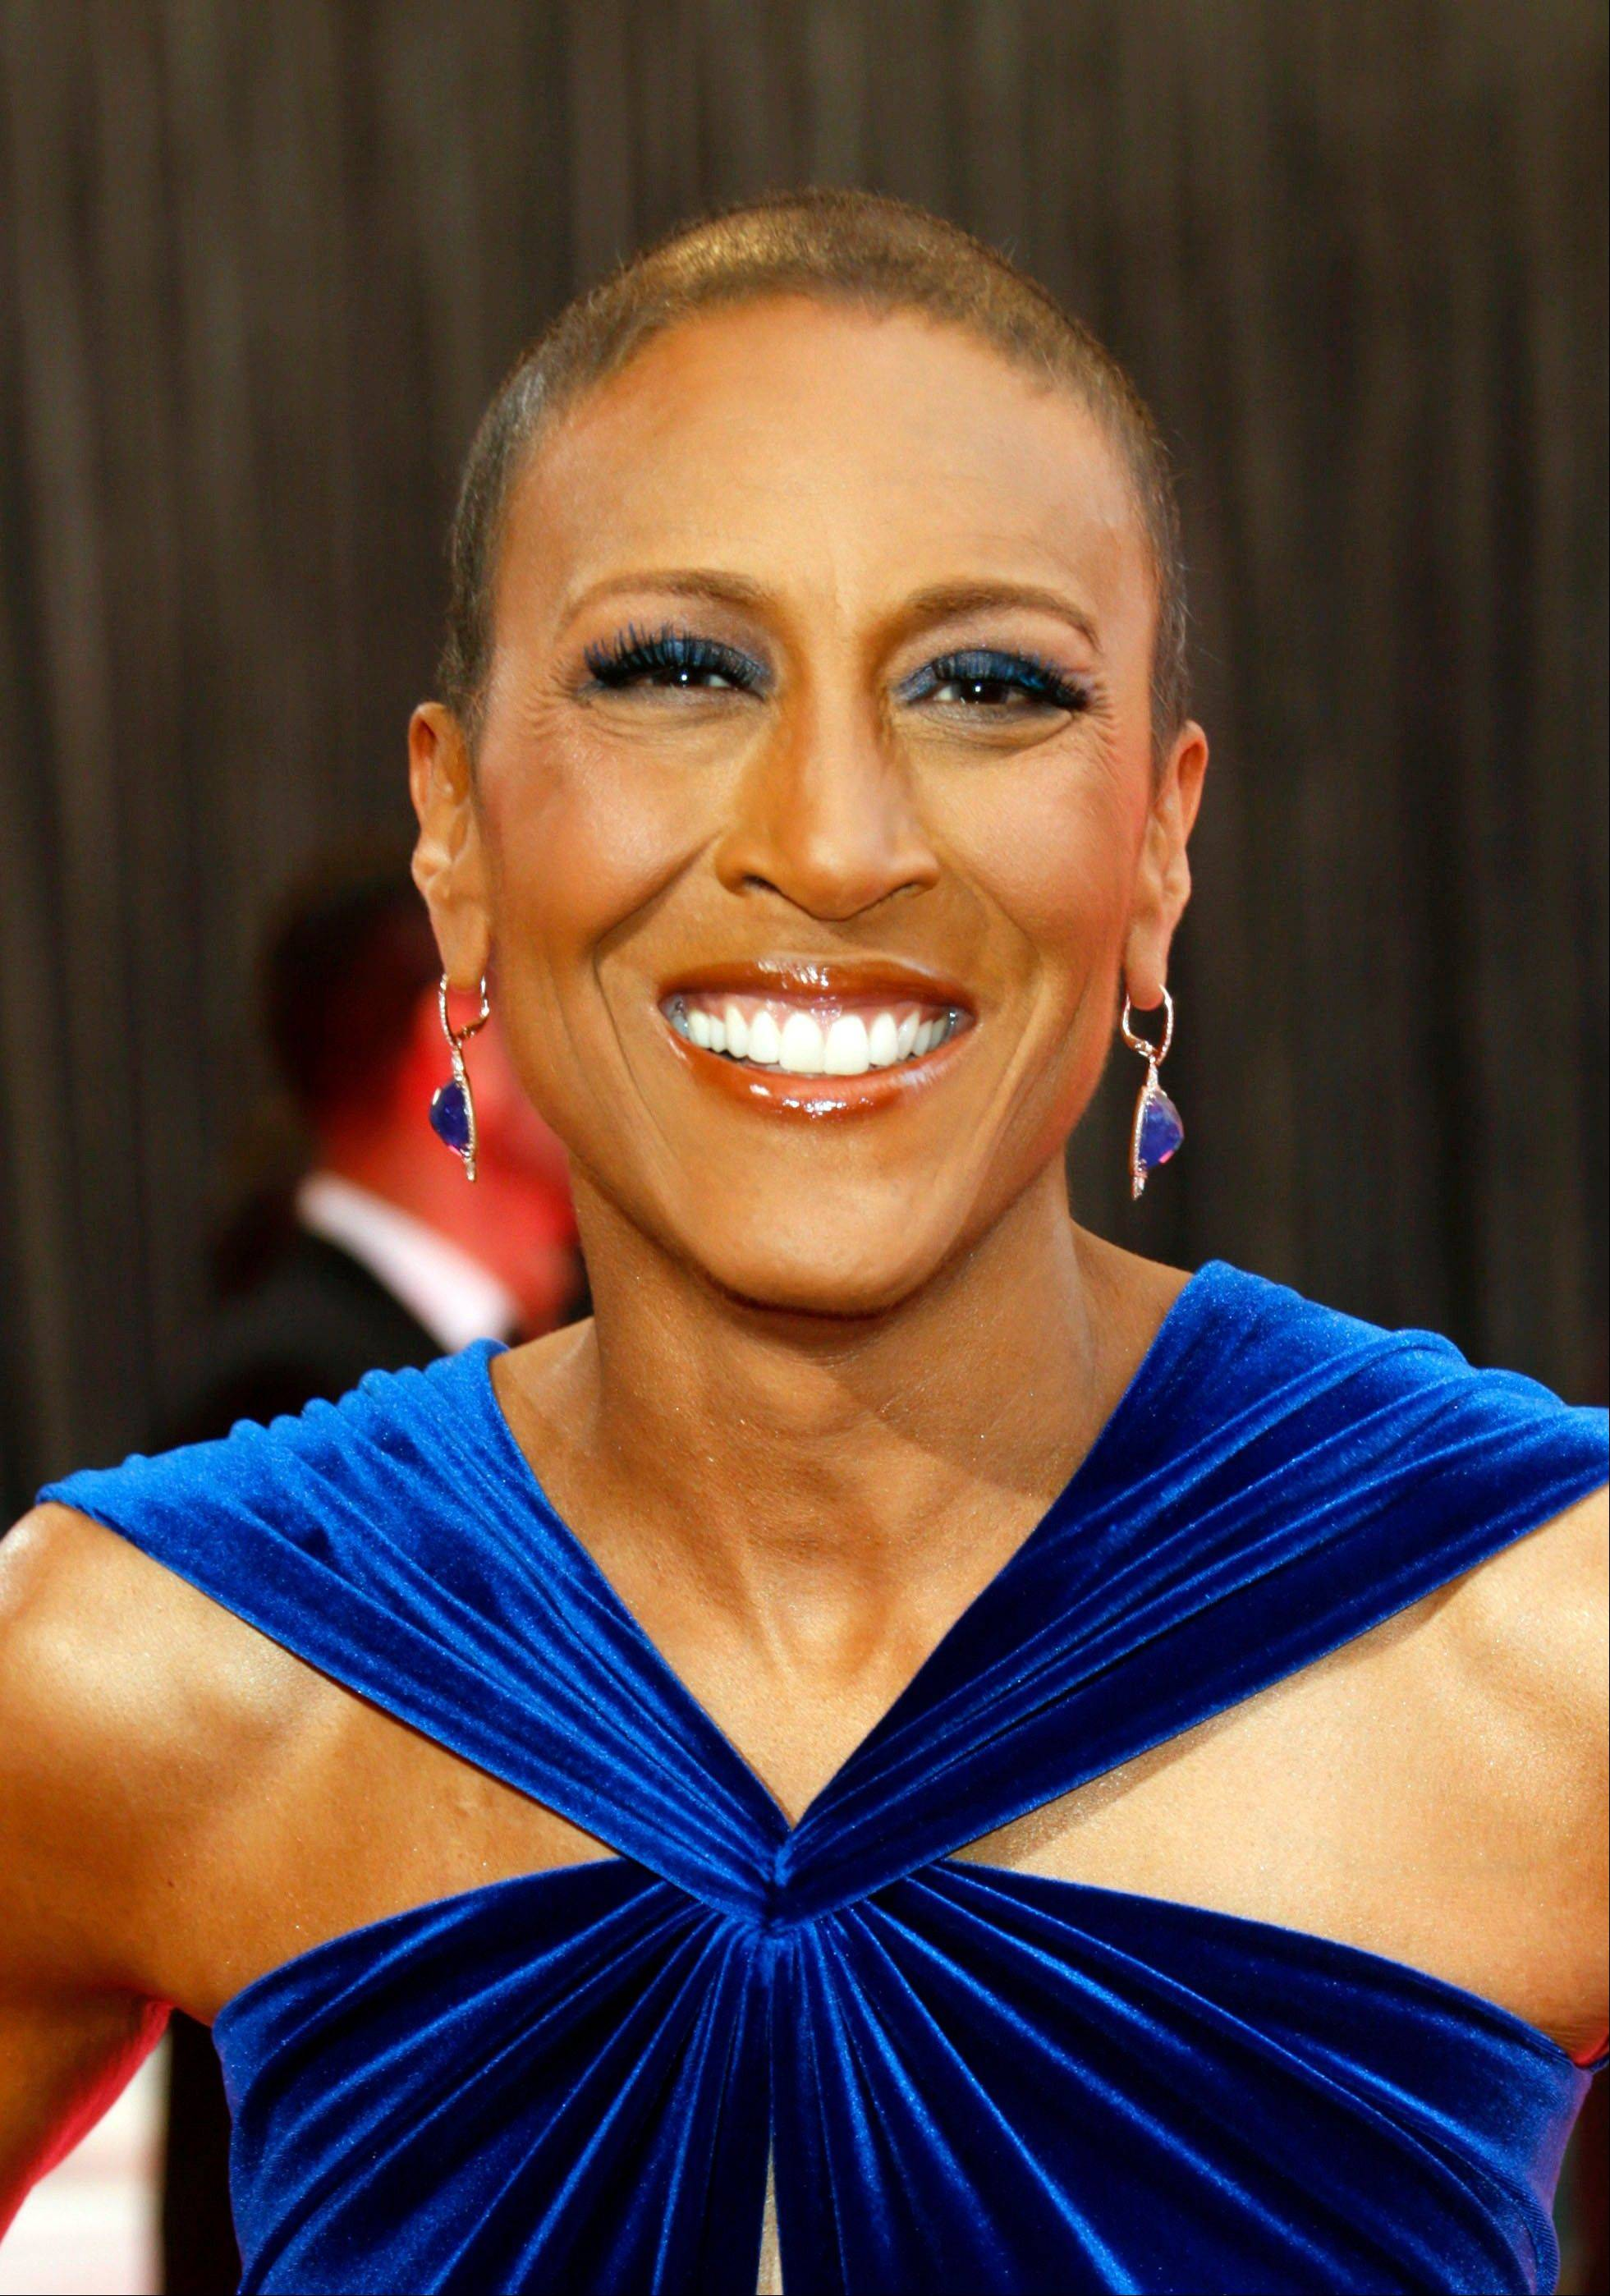 This Feb. 24, 2013 file photo shows broadcaster Robin Roberts arriving at the 85th Academy Awards at the Dolby Theatre in Los Angeles. Roberts thanked her longtime girlfriend, Amber Laign, in a year-end post published on the ABC News anchor�s Facebook page on Sunday, Dec. 29, 2013. The message comes after Roberts� battle with a life-threatening illness. This is the first time the �Good Morning America� anchor has publicly acknowledged her 10-year, same-sex relationship with Laign, a massage therapist from the San Francisco Bay Area, who focuses on patients recovering from injuries.